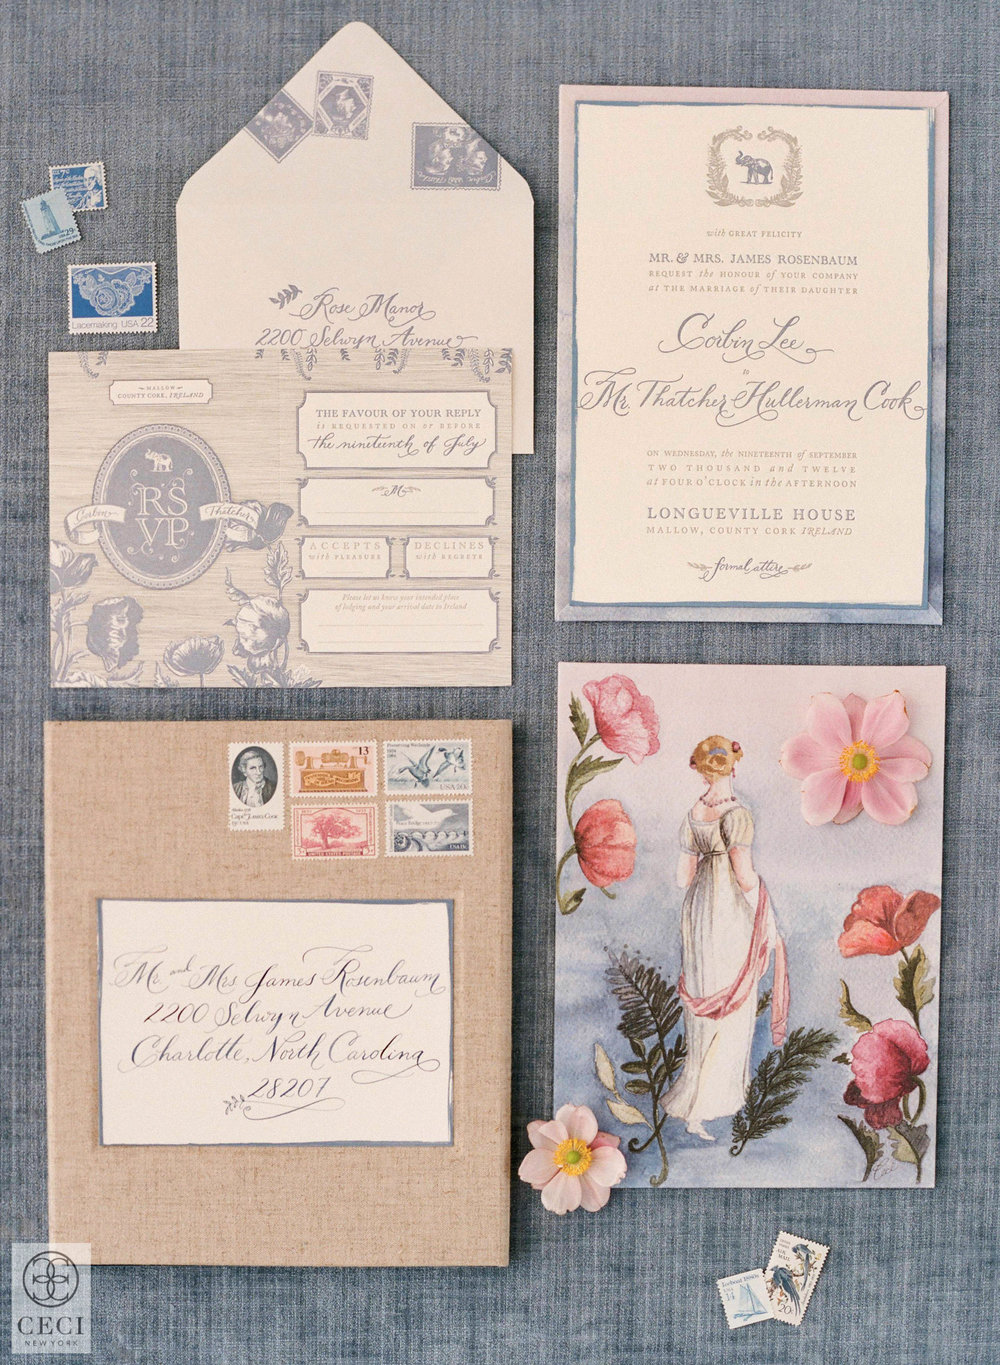 Ceci_New_York_Ceci_Style_Ceci_Johnson_Luxury_Lifestyle_Wedding_Letterpress_Watercolor_Hand_Painted_Inspiration_Design_Custom_Couture_Personalized_Invitations_-2.jpg